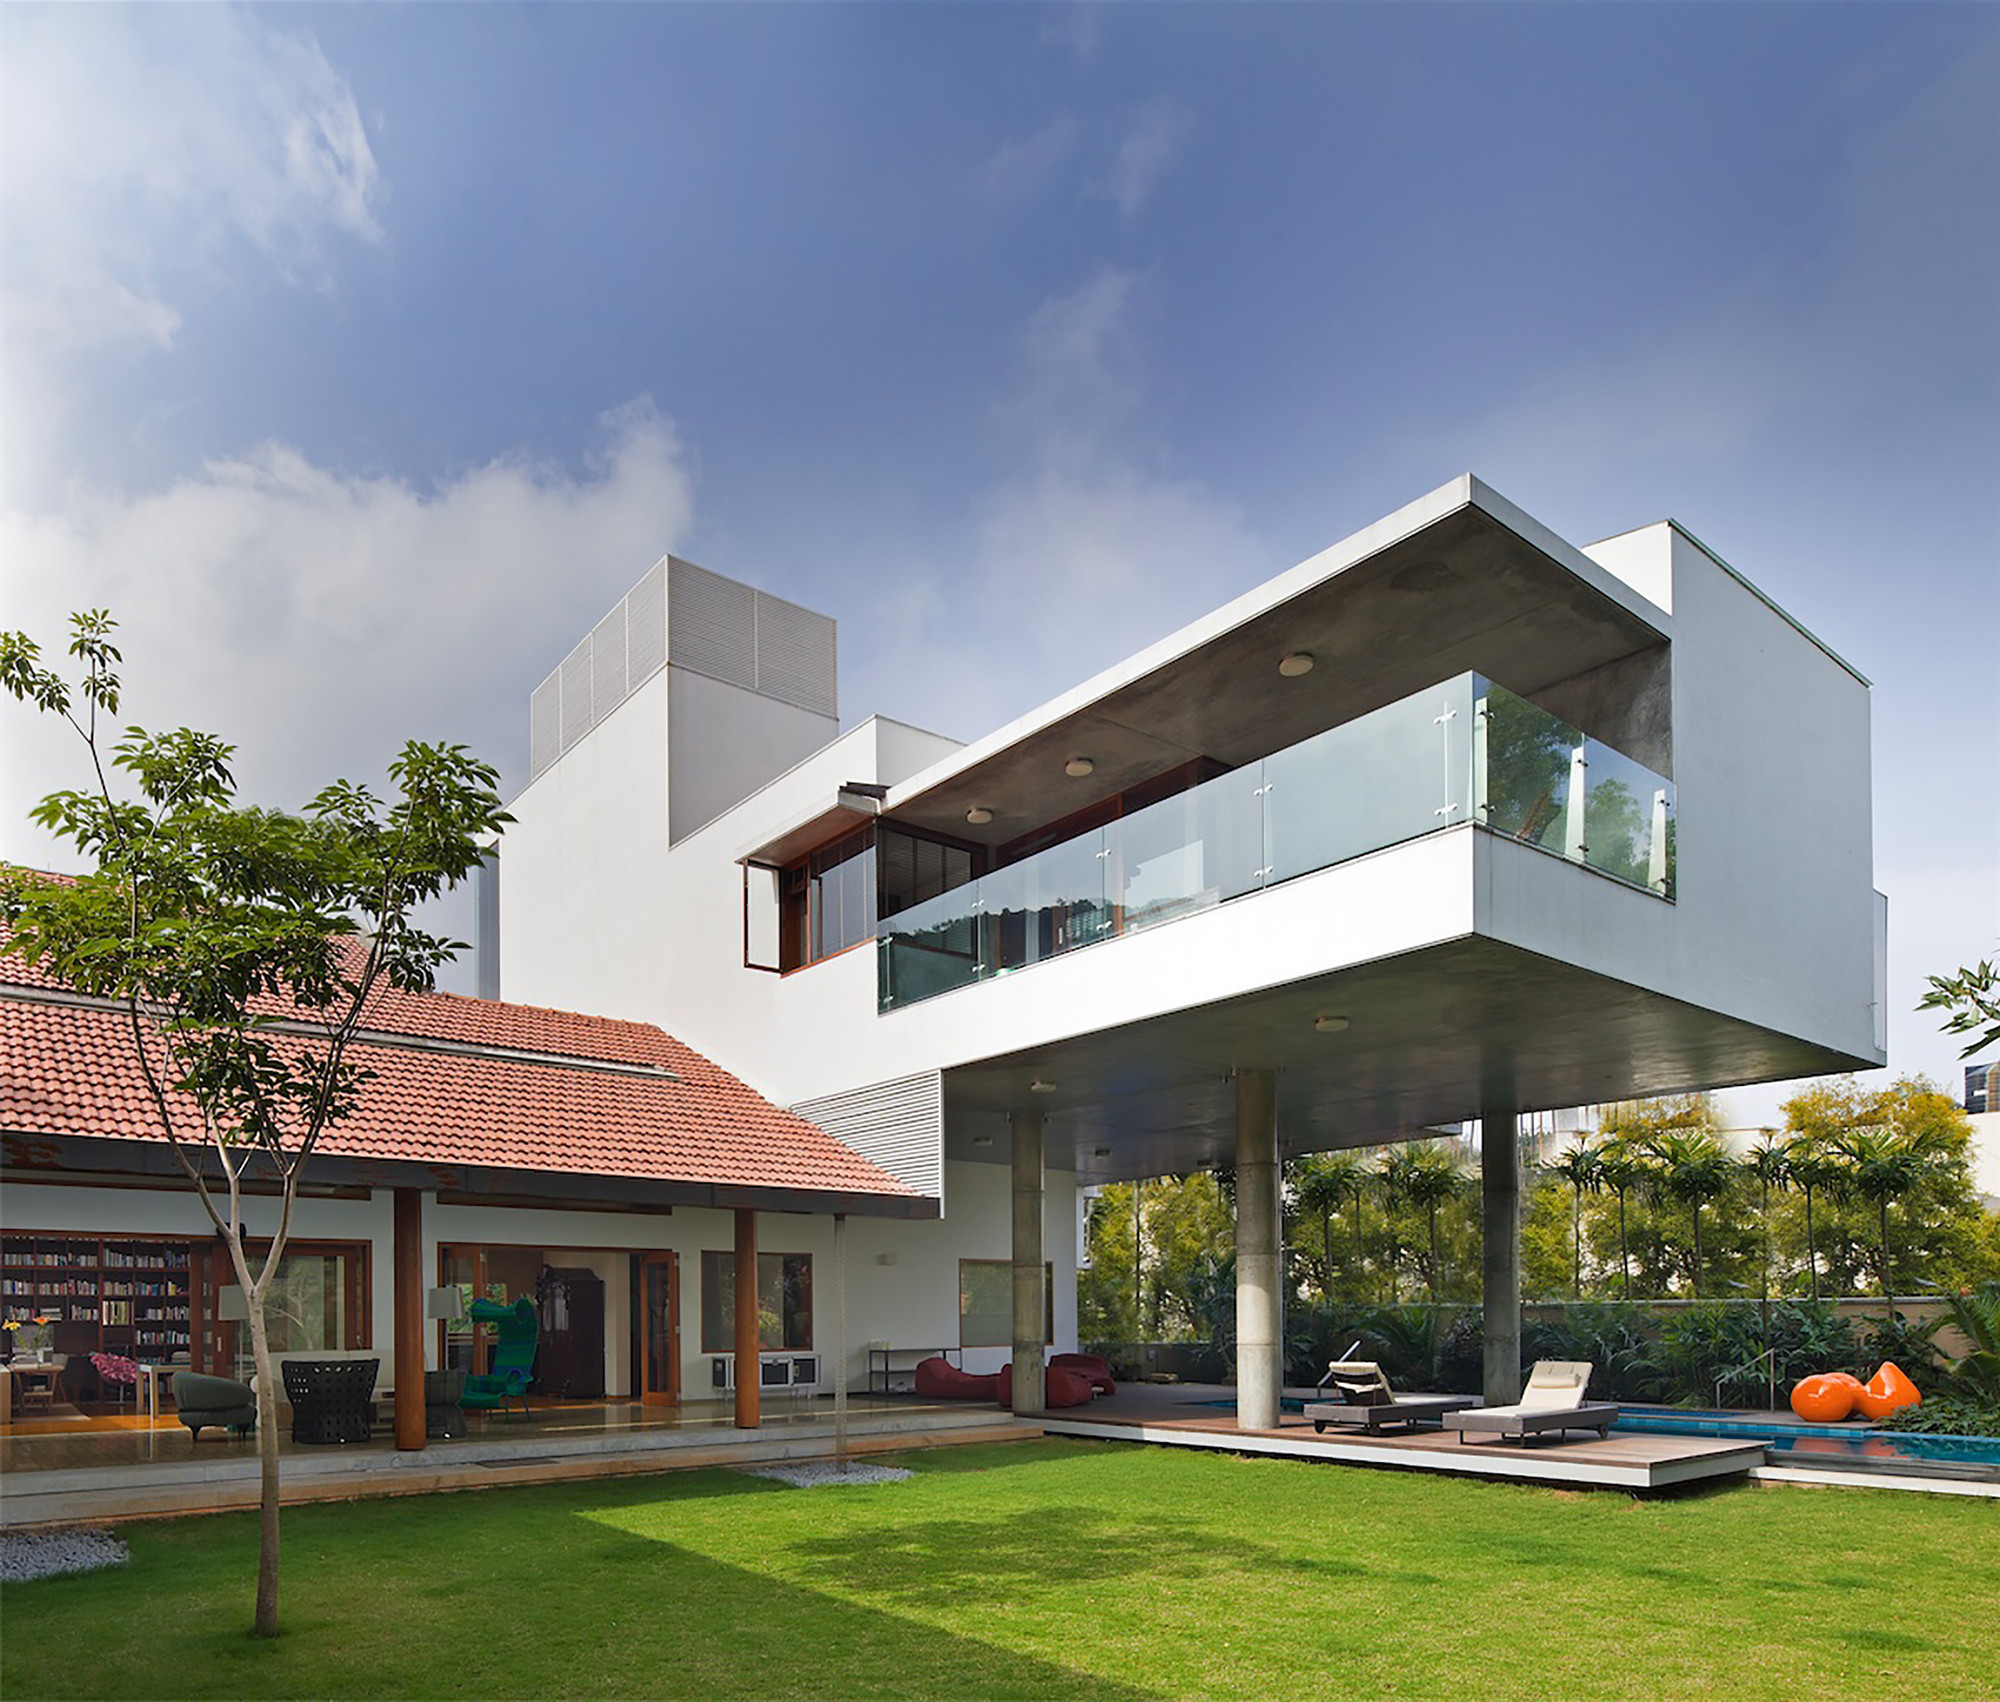 Best Architecture Houses In India the library house / khosla associates | archdaily